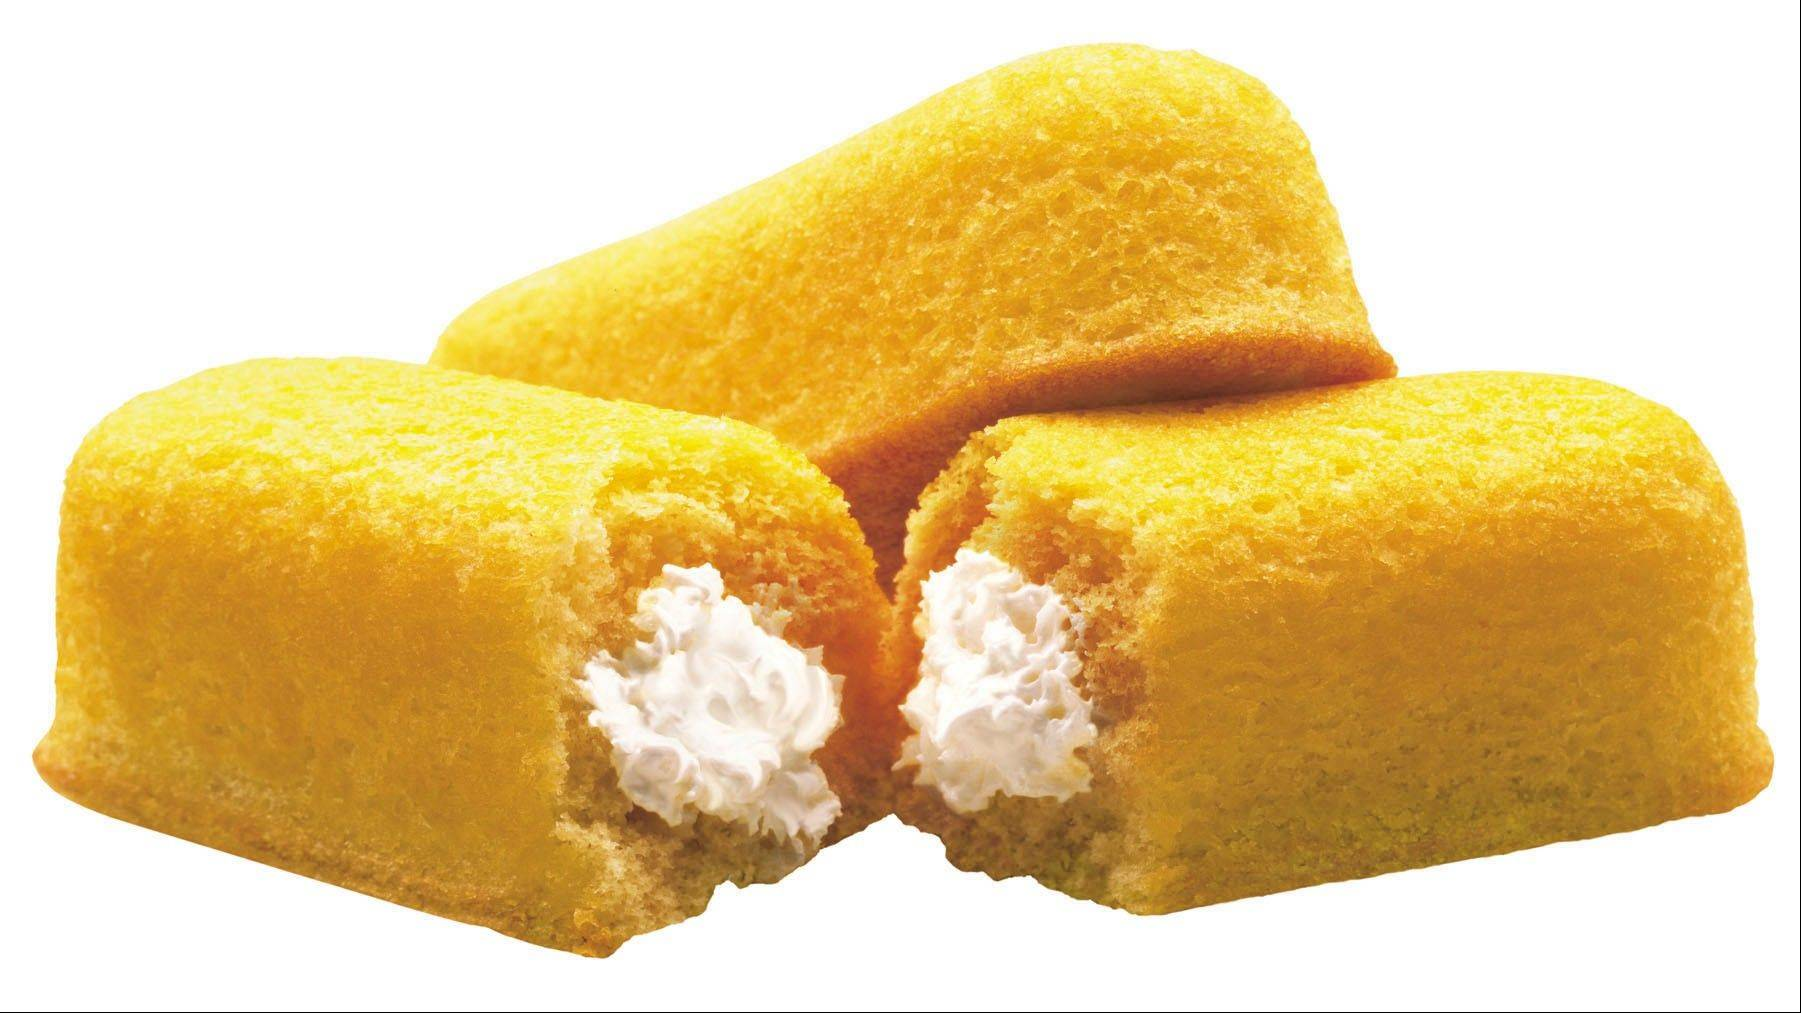 Twinkies first came onto the scene in 1930 and contained real fruit until rationing during World War II led to the vanilla cream Twinkie.